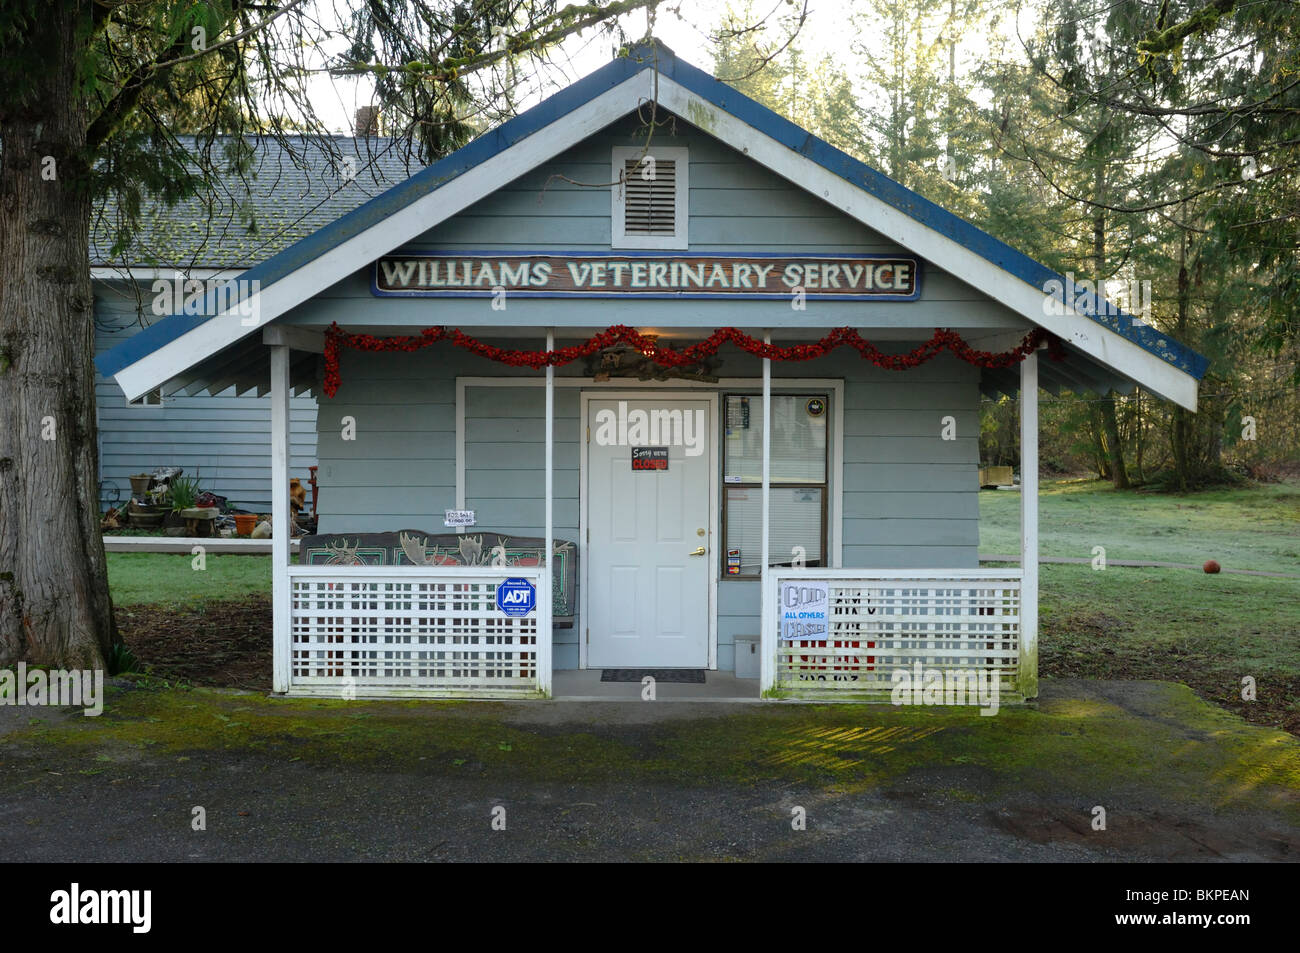 Veterinary Surgery in Maple Falls a small town in the Cascades on the Mount Baker Highway Whatcom County, Washington, - Stock Image